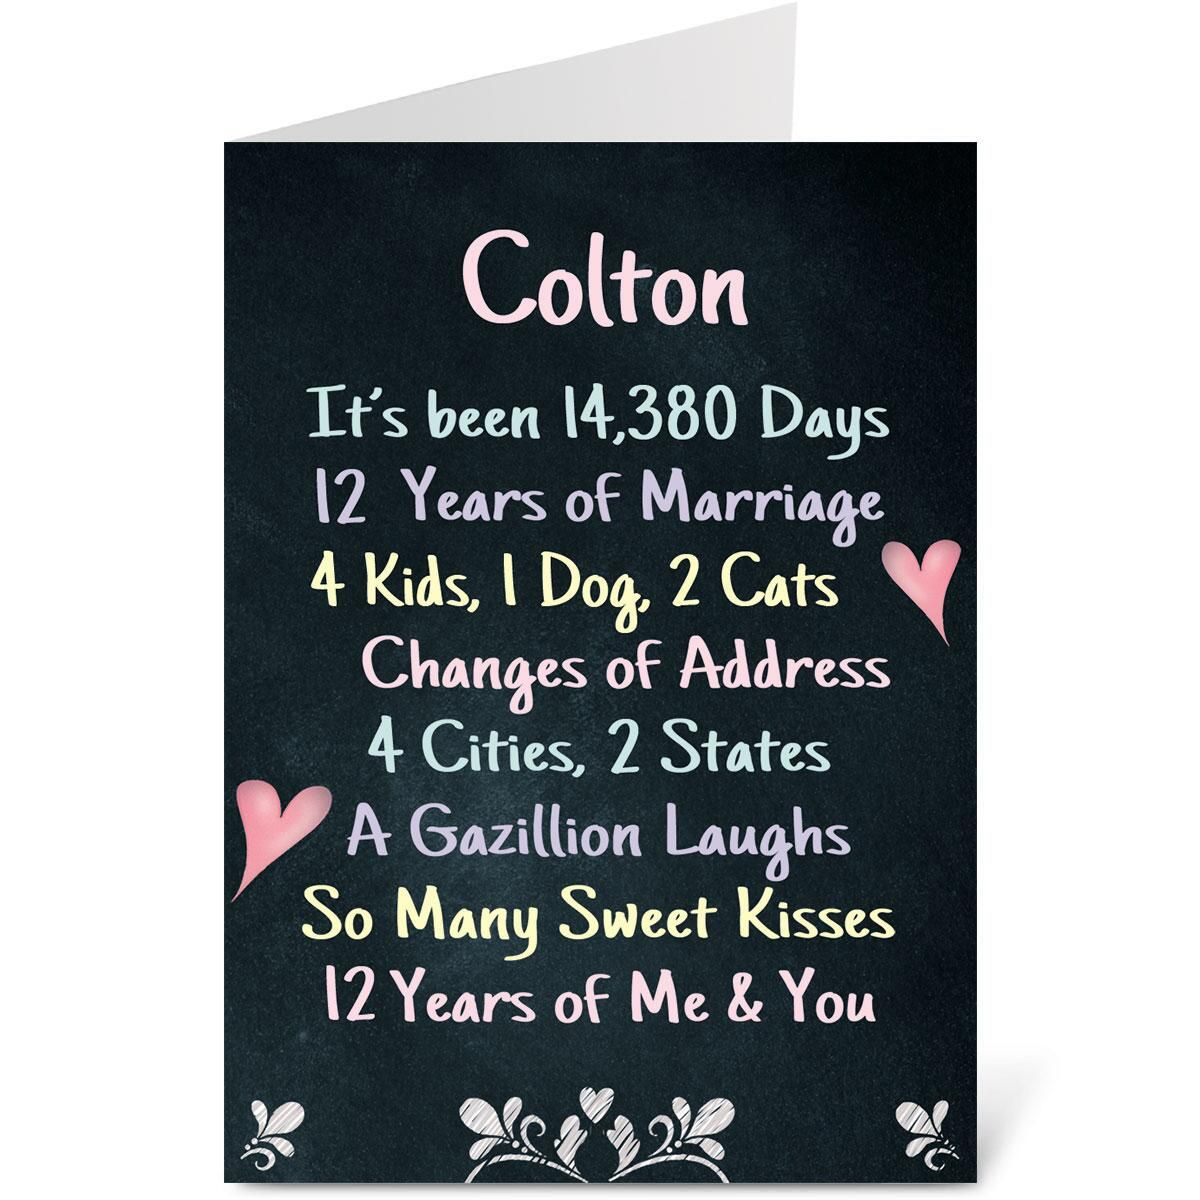 Our Life Chalkboard Valentine Create-A-Card